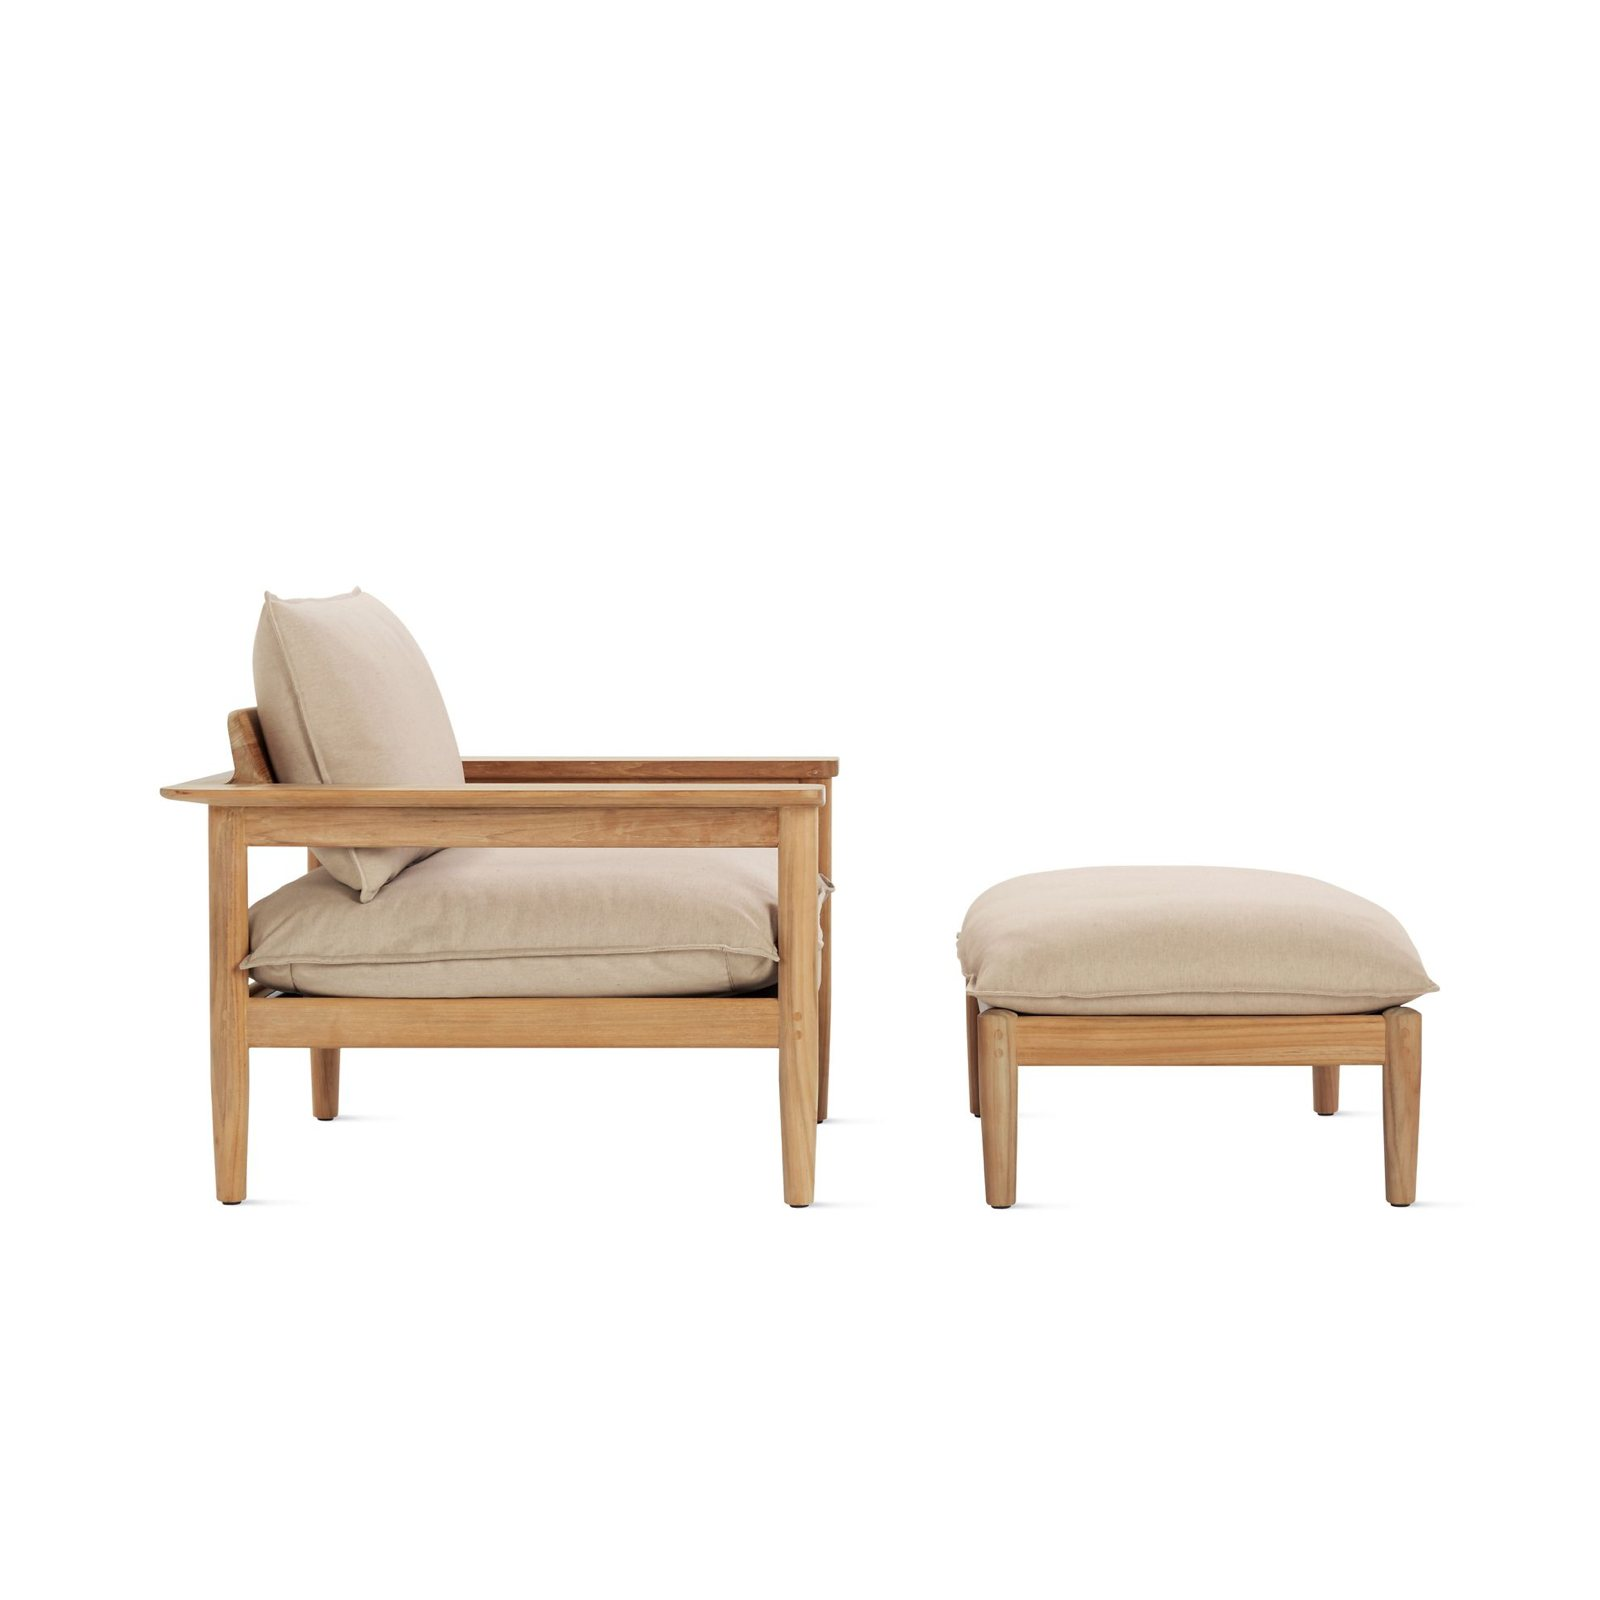 Teri Lounge Chair And Ottoman By Studio Tolvanen For Design Within Reach